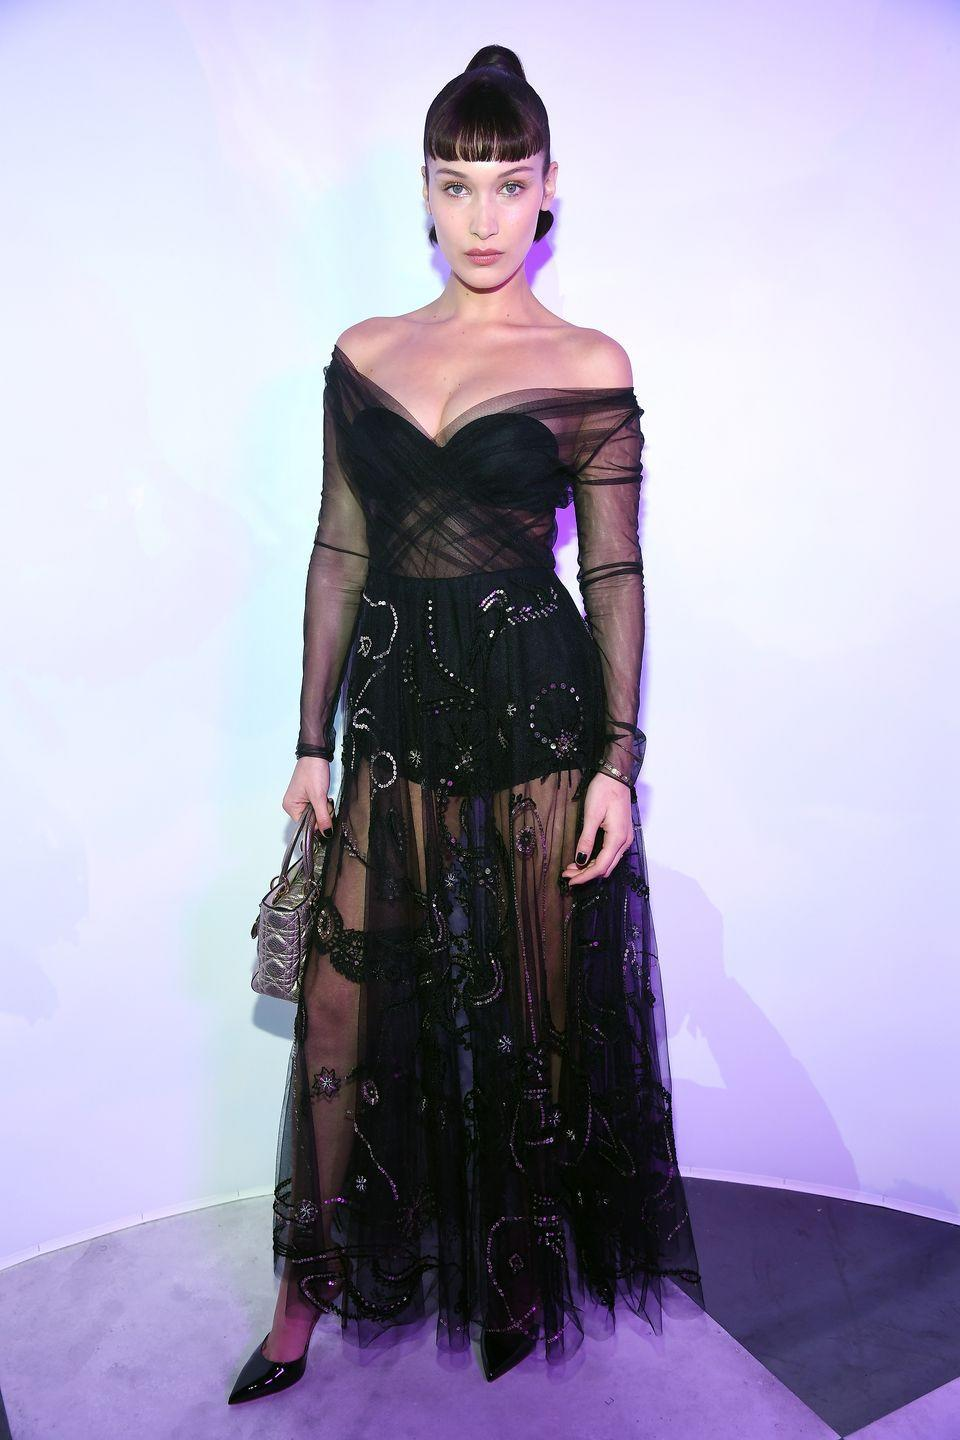 <p>Dior's corset dresses with sheer fabric and an exposed hot pant scream LBD with a twist. These designs had a real moment in 2018 and were worn by some of the most stylish celebrities, including Bella Hadid.<br></p>